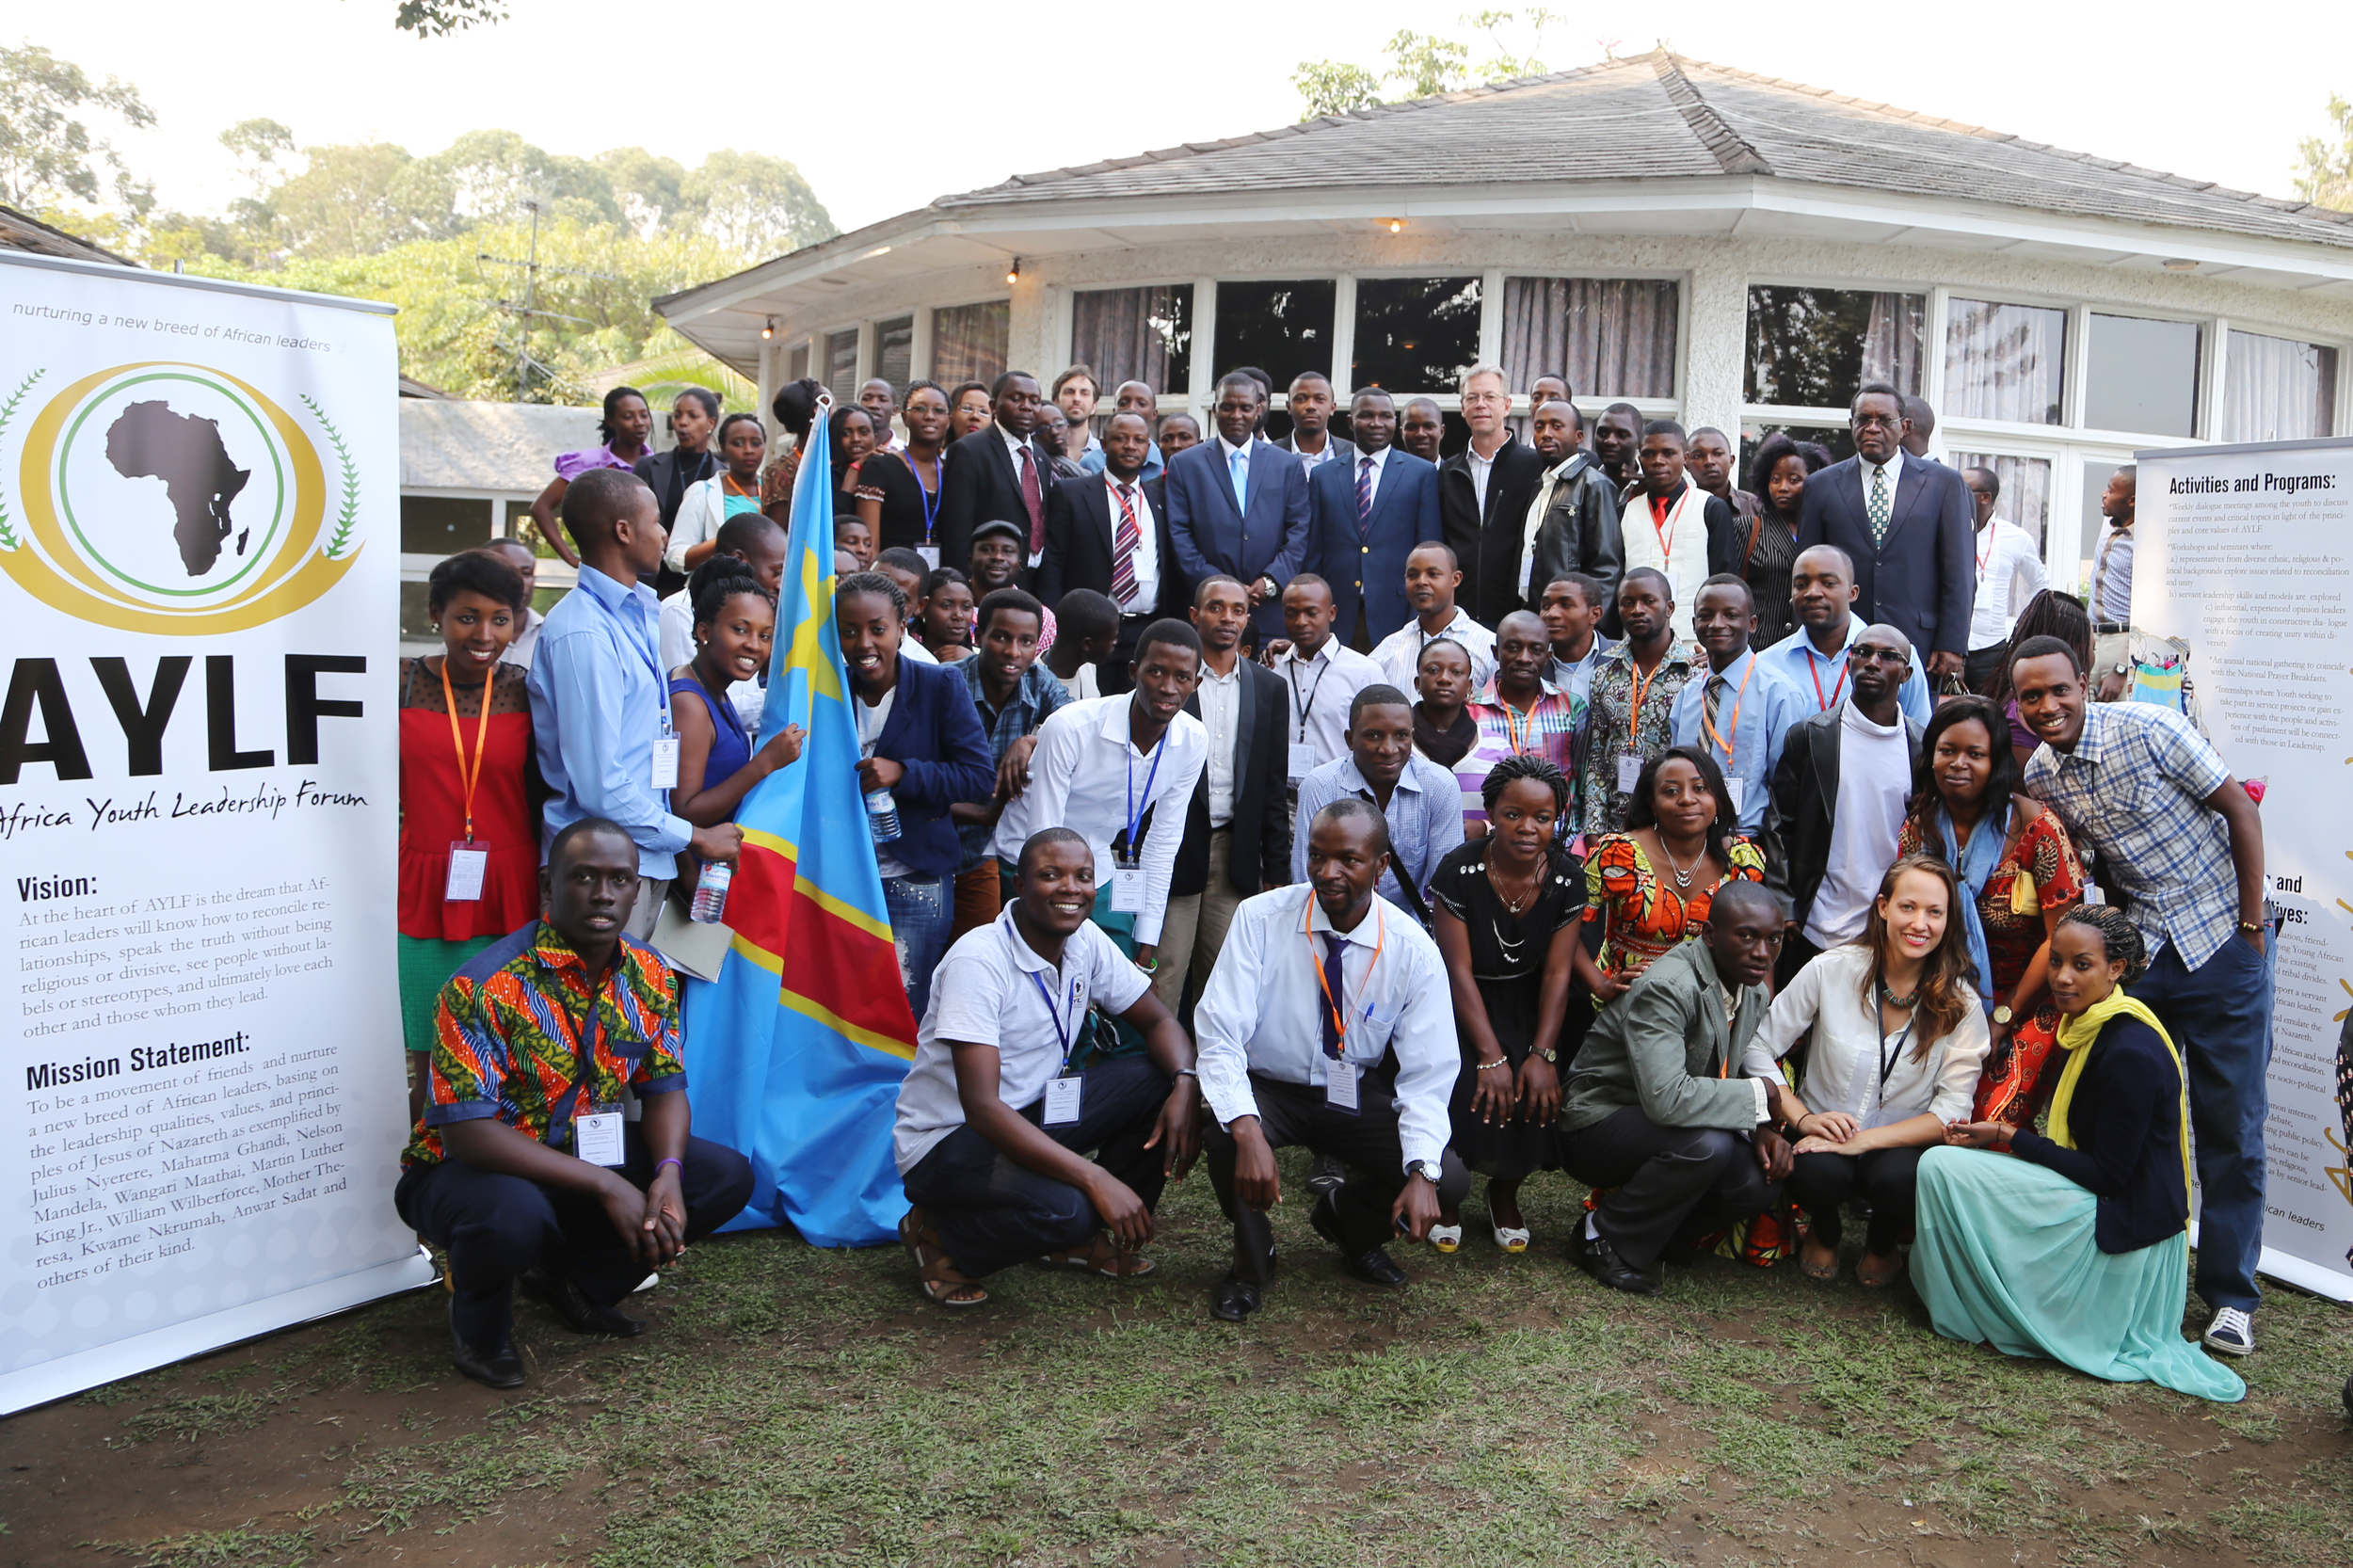 Attendees with the Governor of North Kivu and the former Vice President of Congo